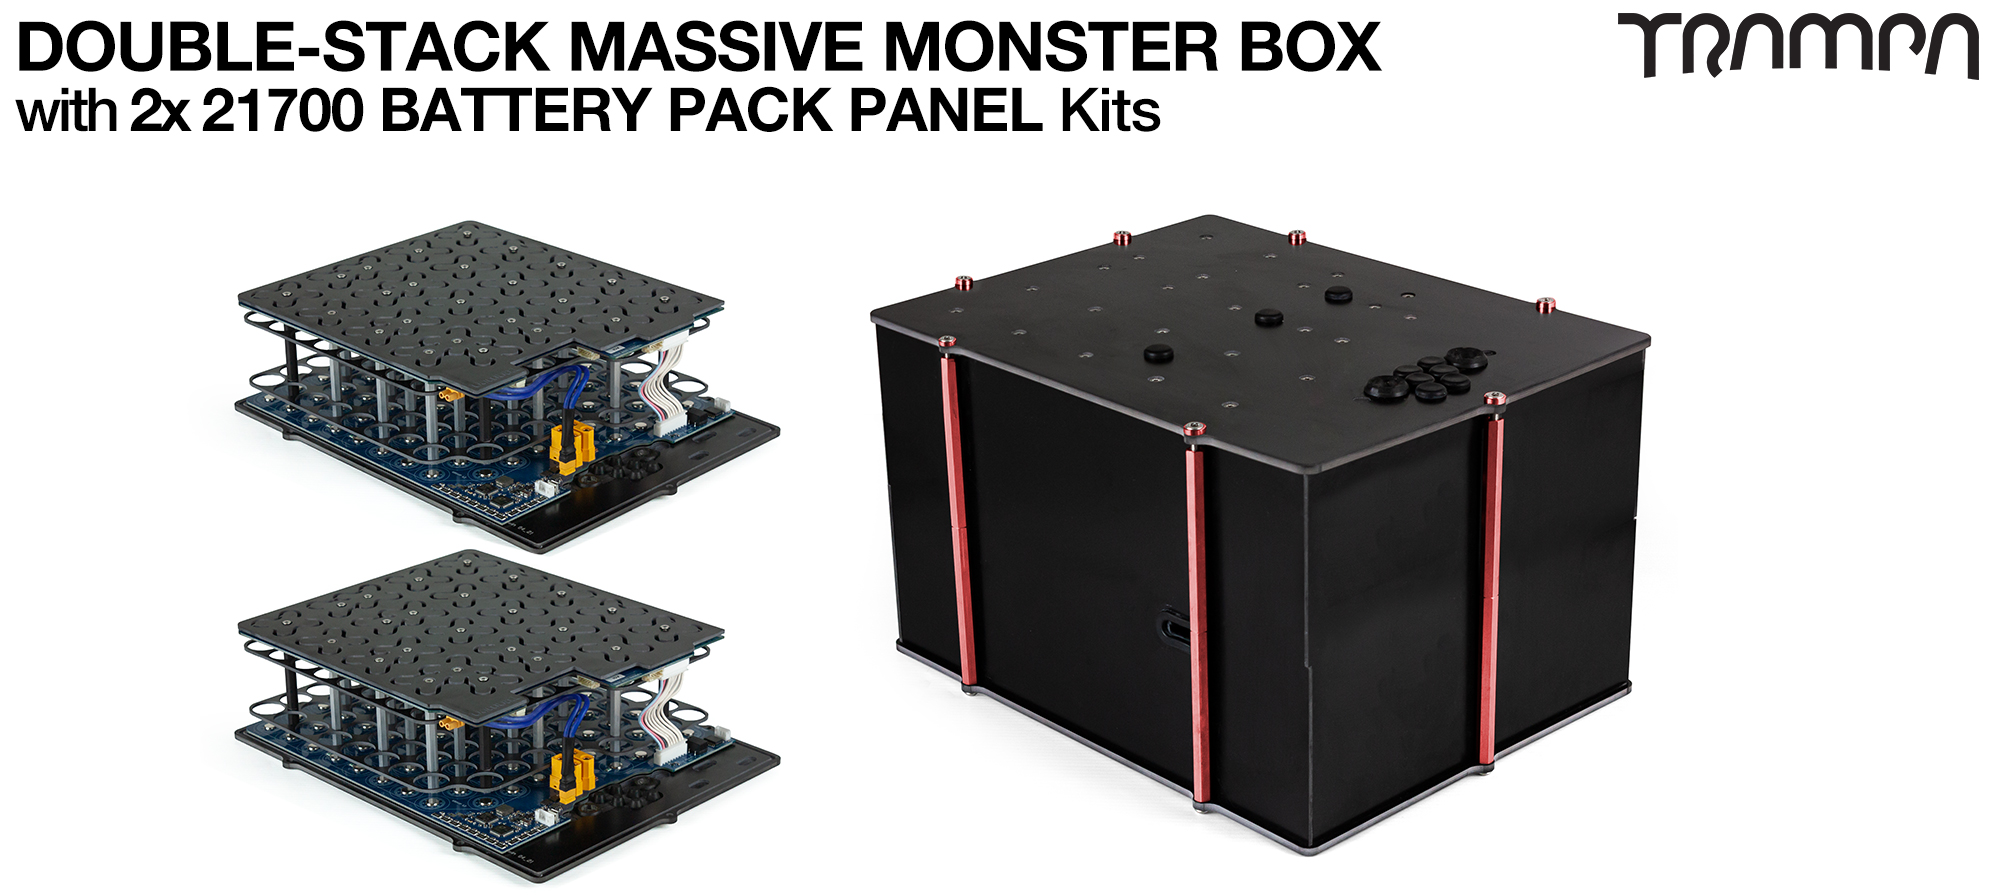 2WD DOUBLE STACK MASSIVE MONSTER Box with 21700 PCB Pack - NO VESC & NO CELLS